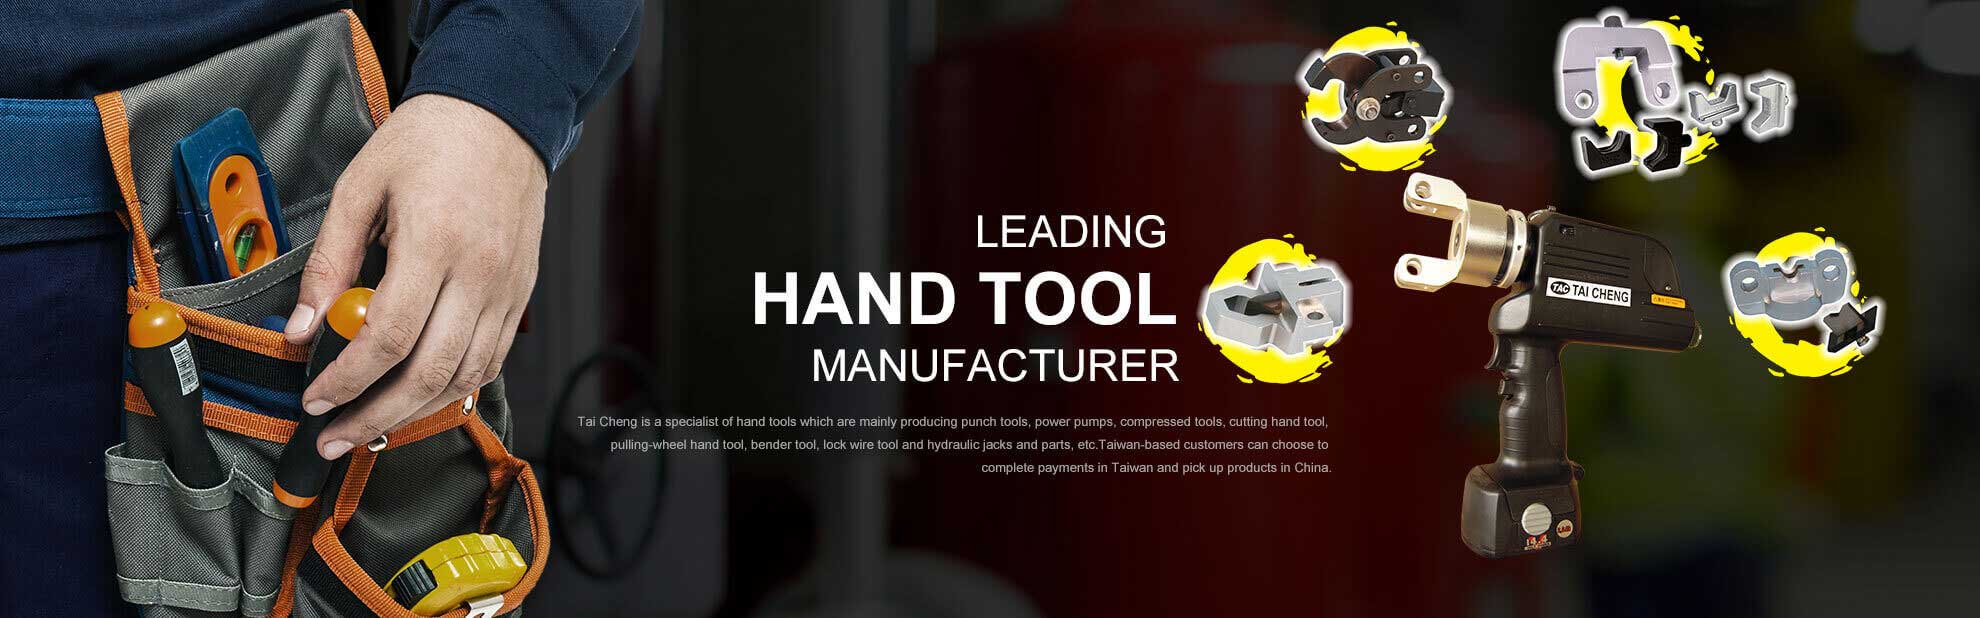 Hydraulic Hand Tools Manufacturer | Tai Cheng Hand Tools Supplier